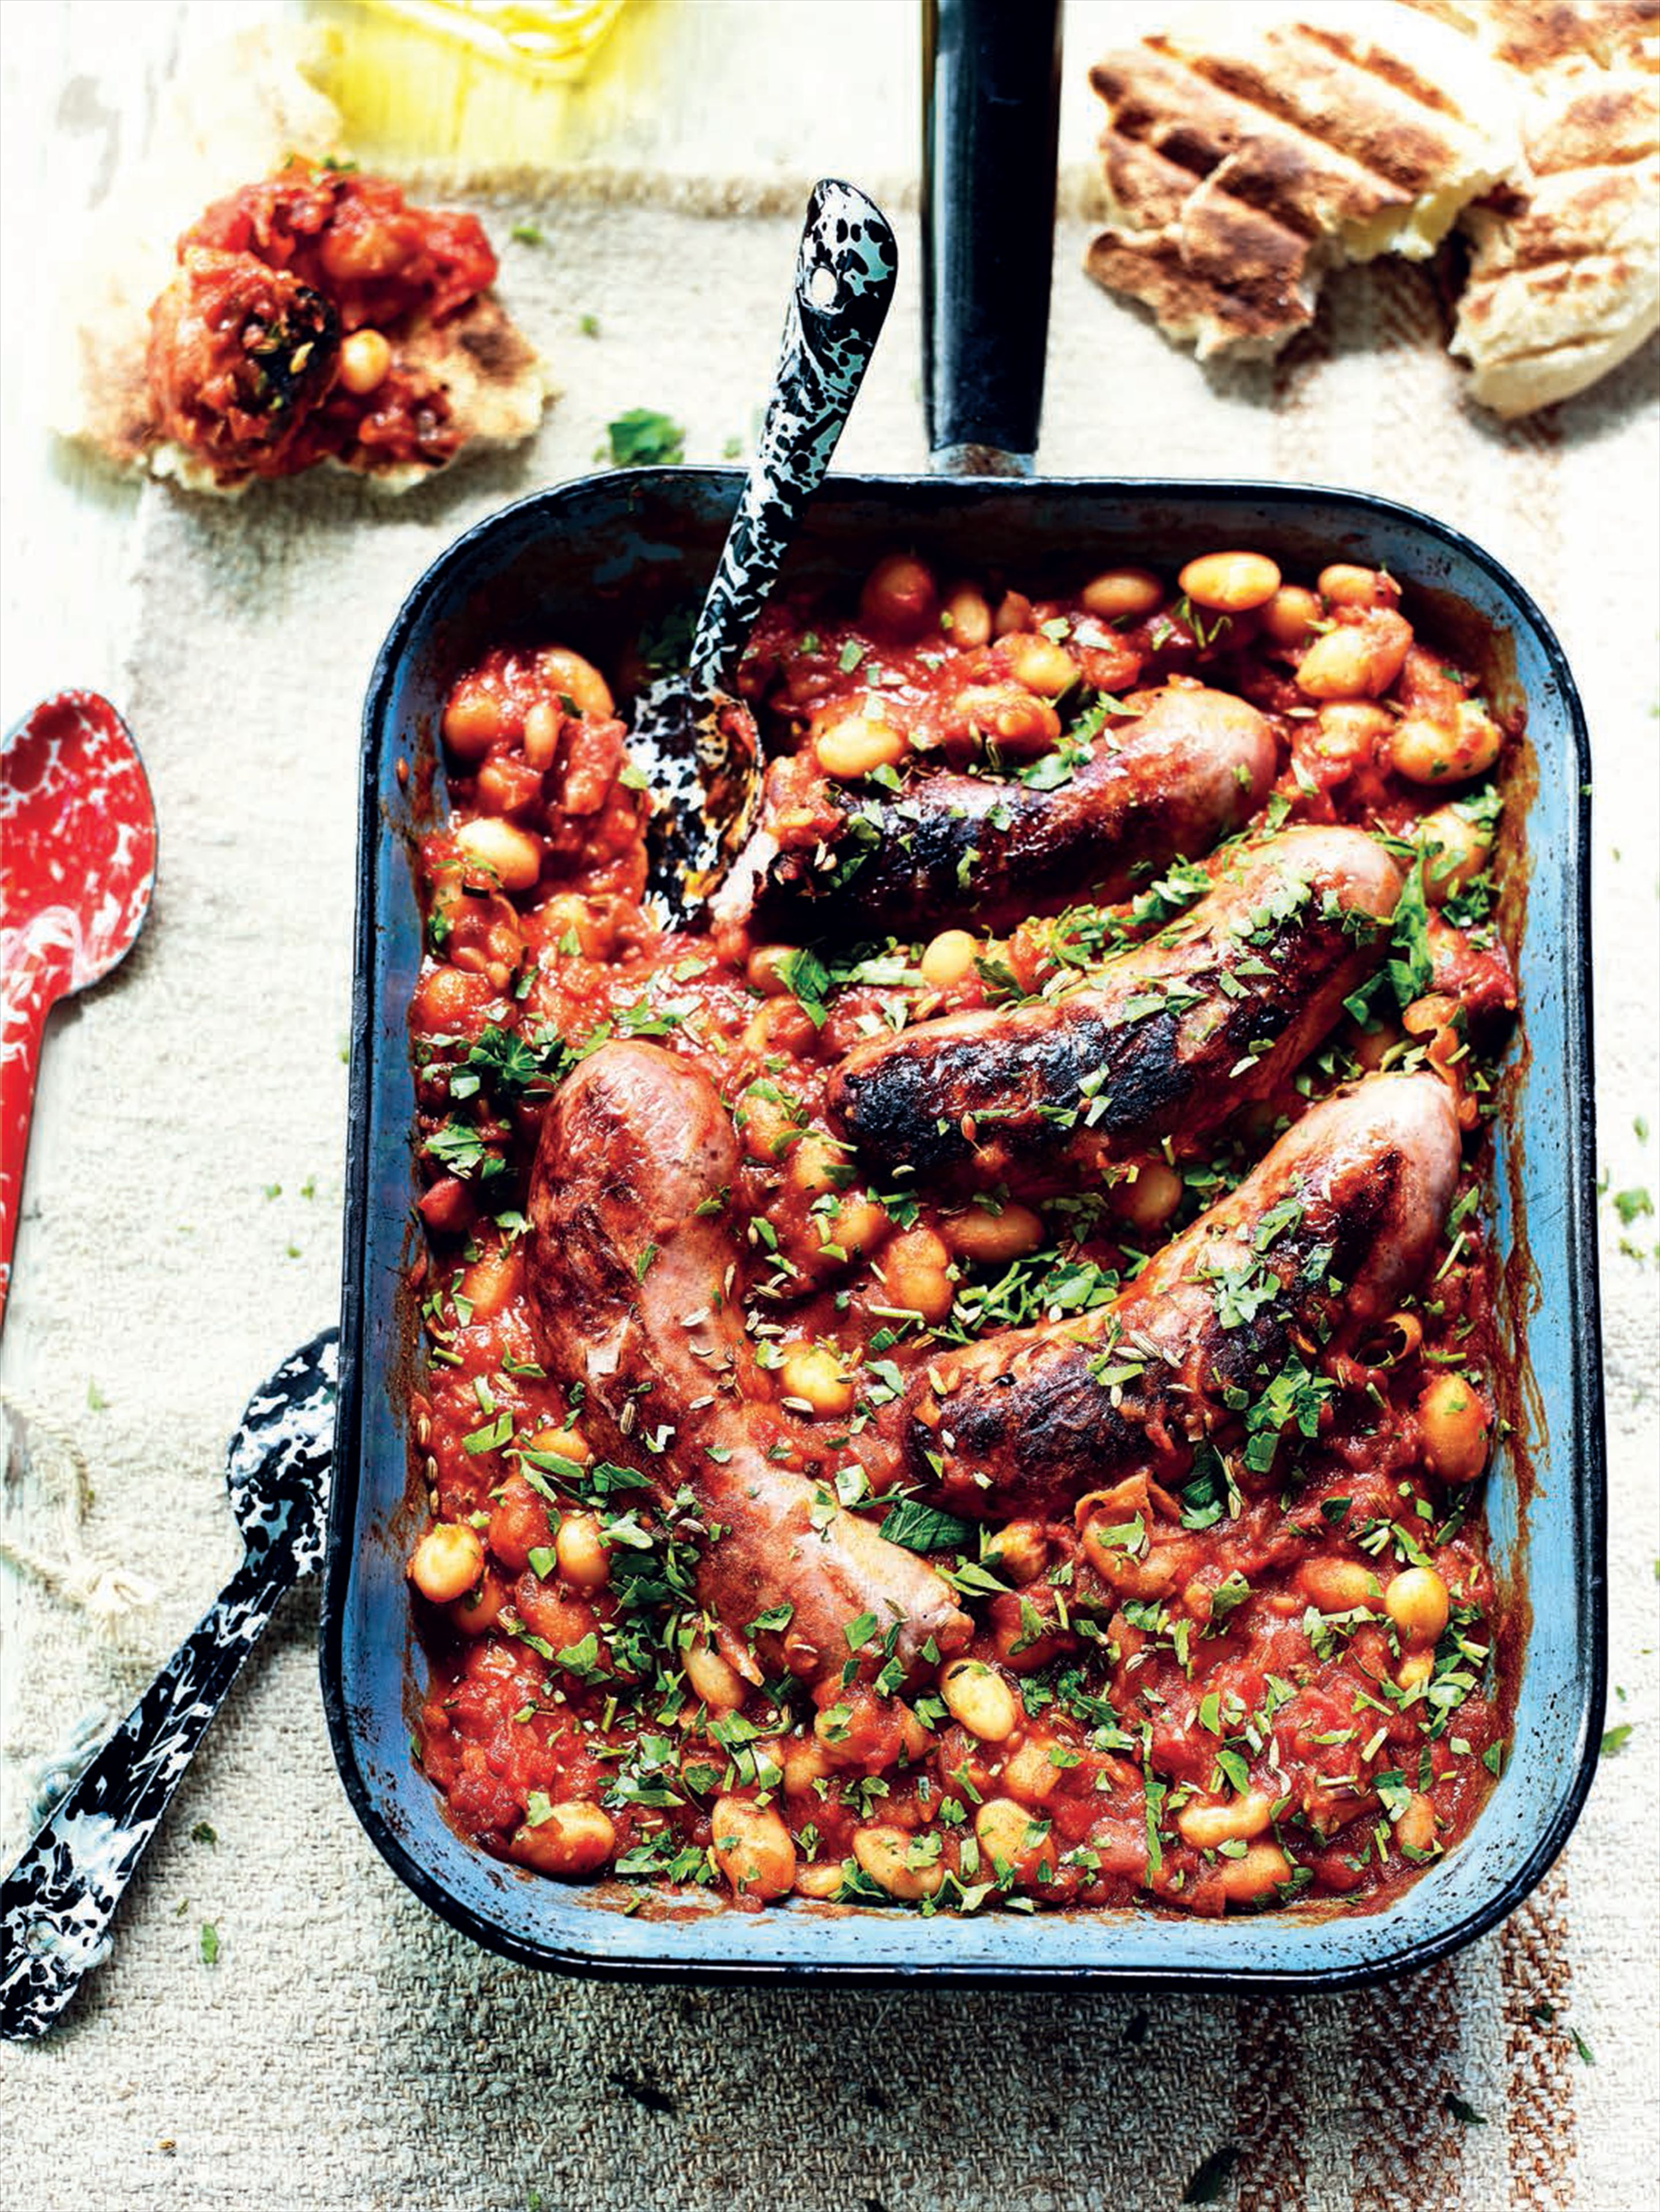 Fennel and pork sausages with cannellini beans